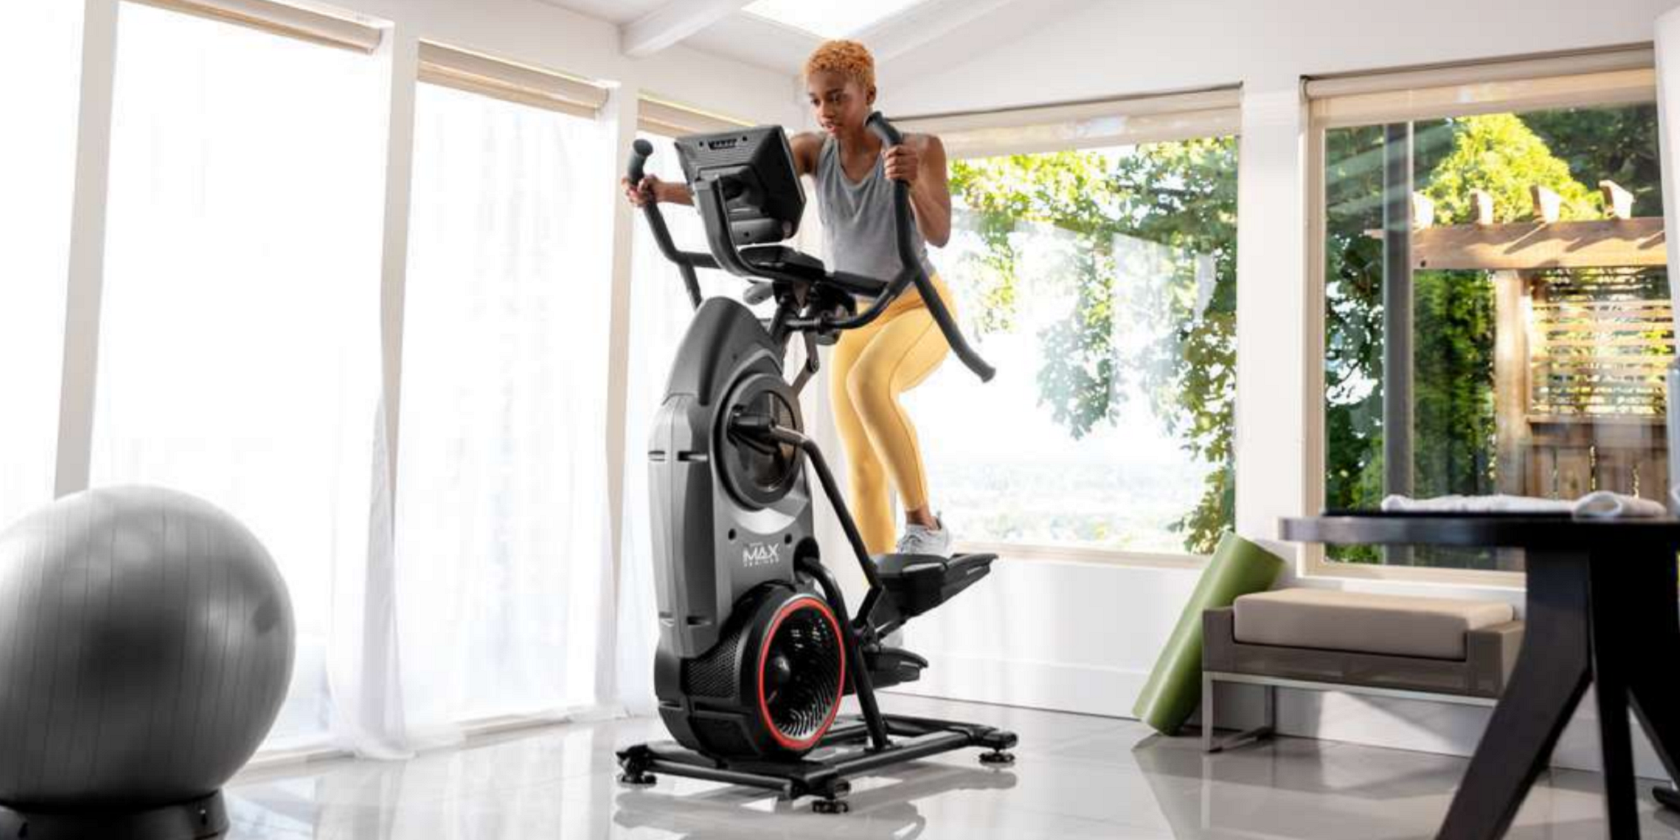 Get Fit While Watching Netflix Using This Workout Machine